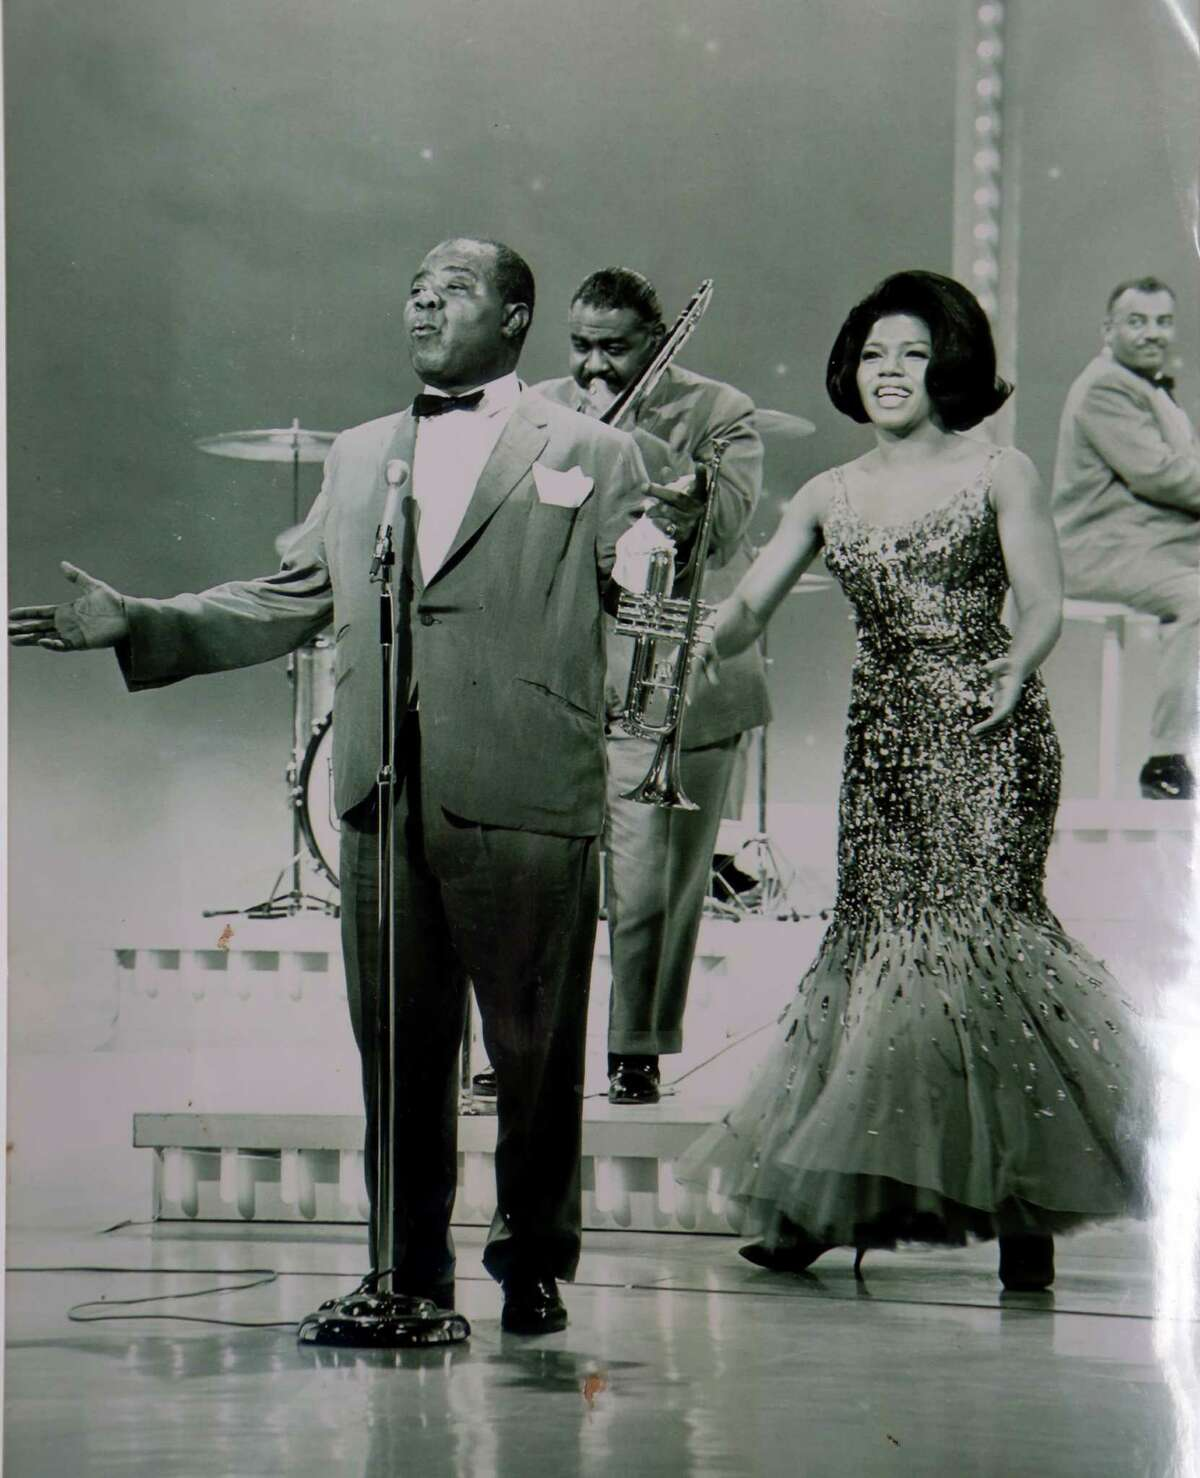 Jewel Brown is shown in a photo taken around 1963 as a vocalist with Louie Armstrong's All Star Band. She is a long-time resident of the Third Ward.